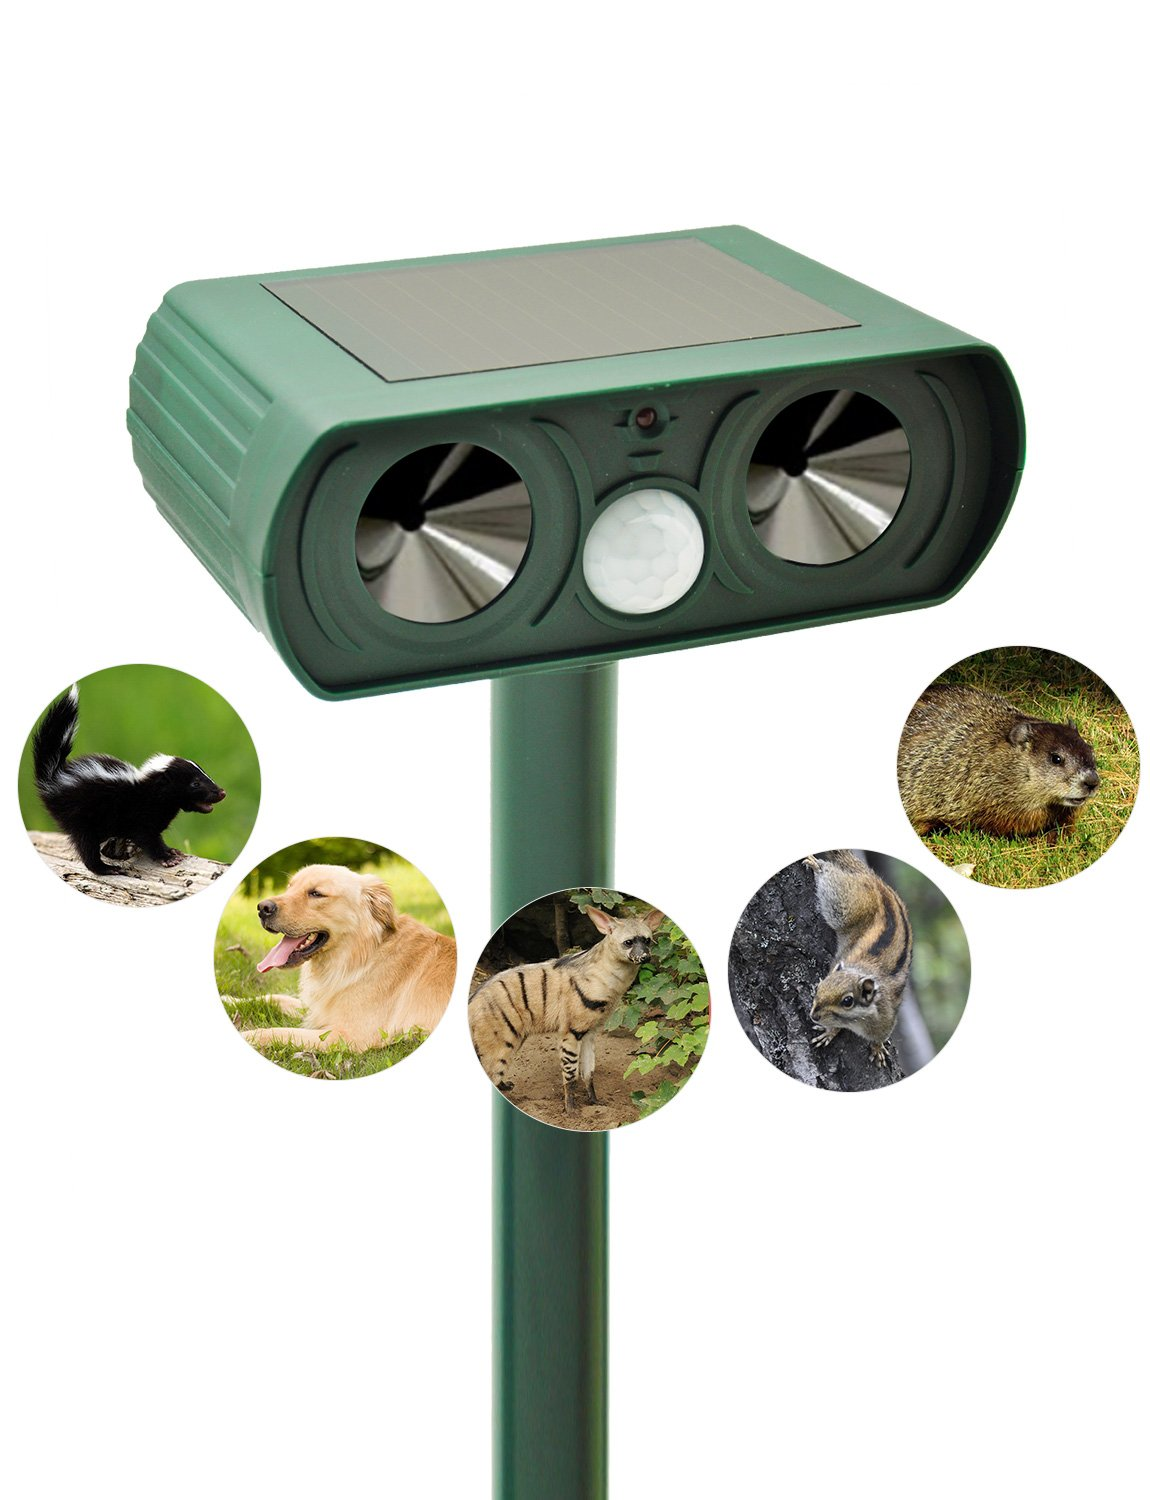 Gardome Ultrasonic Animal Repeller, Solar Powered Pest Repeller with Motion Activated PIR Sensor, Outdoor Waterproof Farm Garden Repellent, Repel Dogs, Gophers, Skunks, Coyote and Squirrels